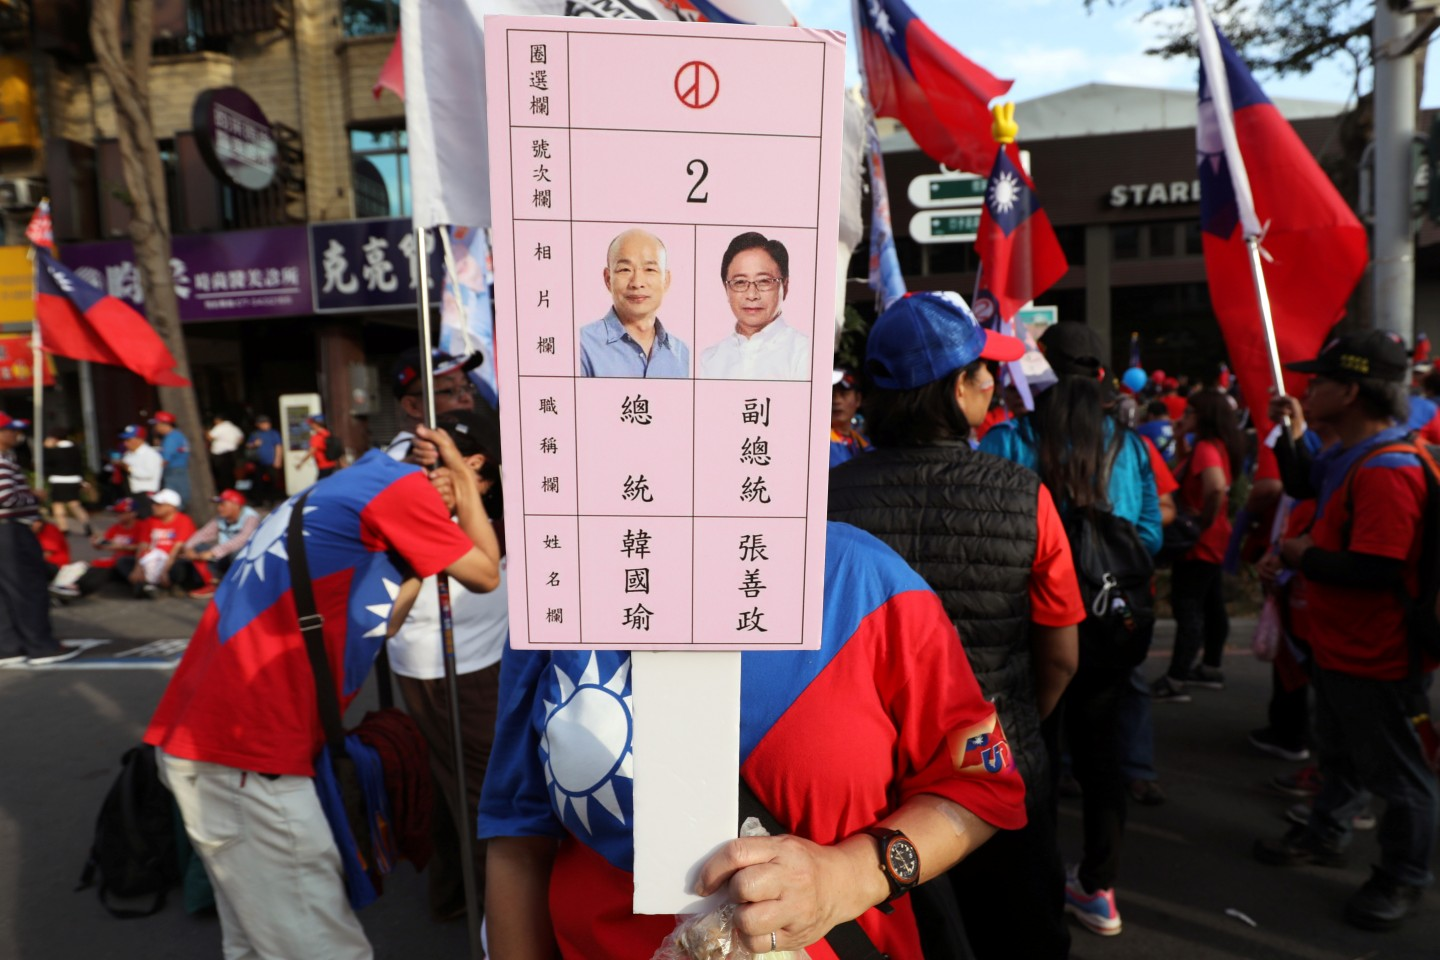 A supporter holds a placard depicting Taiwan's KMT party candidates Han Kuo-yu and Chang San-cheng during a campaign rally in Kaohsiung, Taiwan, December 21, 2019. (Ann Wang/Reuters)